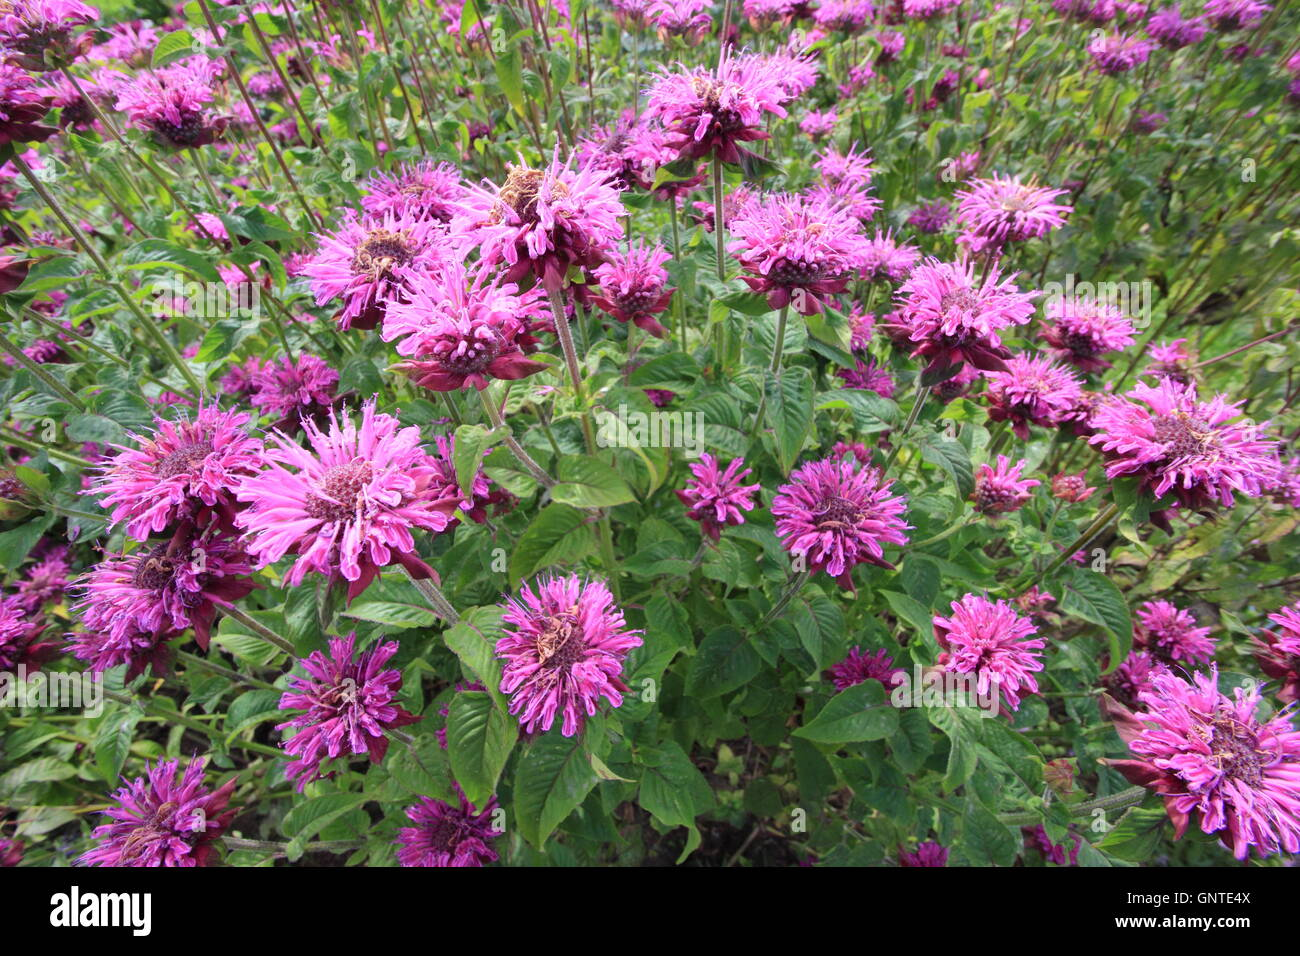 Monarda fistulosa. Bergamot flowers in the herbaceous border of a traditional English garden - August, UK Stock Photo